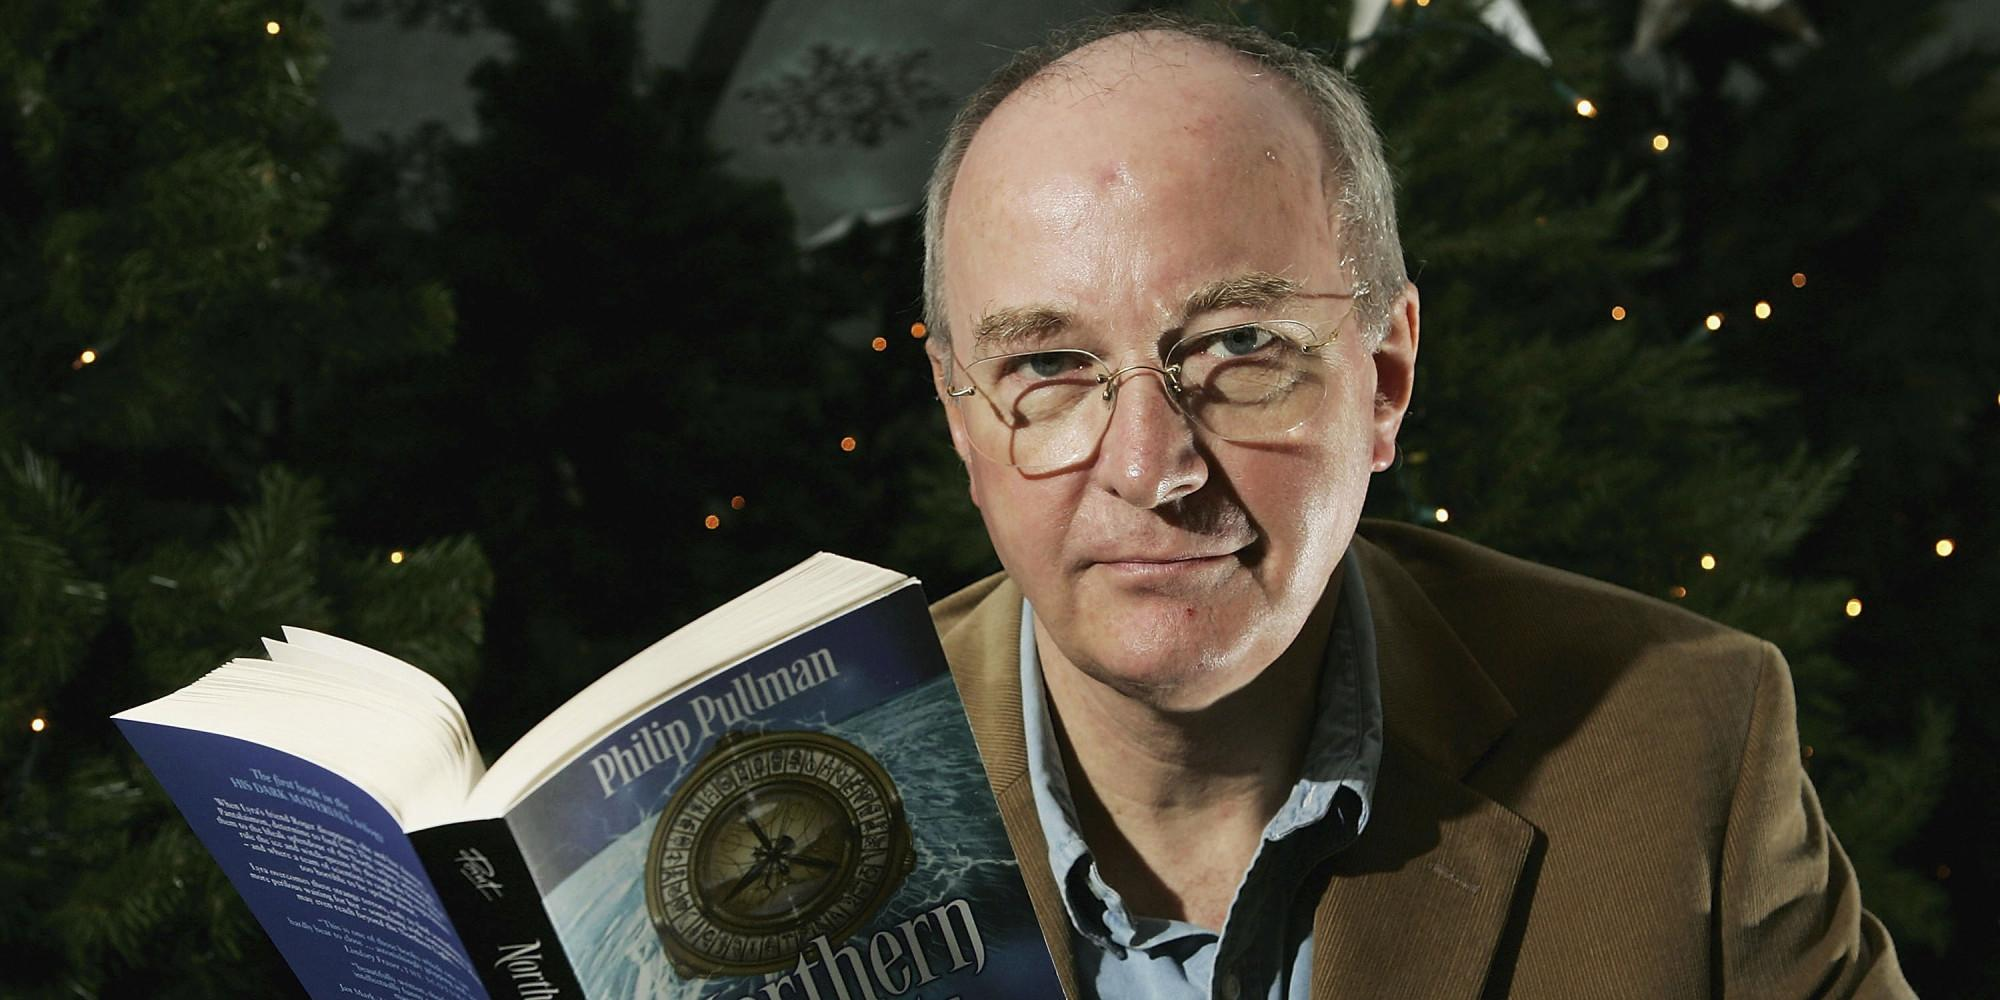 "LONDON - DECEMBER 17: Author Philip Pullman unveils his 'Find Your Daemon' Christmas trail and exhibition at London Zoo on December 17, 2004 in London. The exhibition is based on ""His Dark Materials"" trilogy of books, helps visitors to the zoo find their own daemon. (Photo by MJ Kim/Getty Images)"